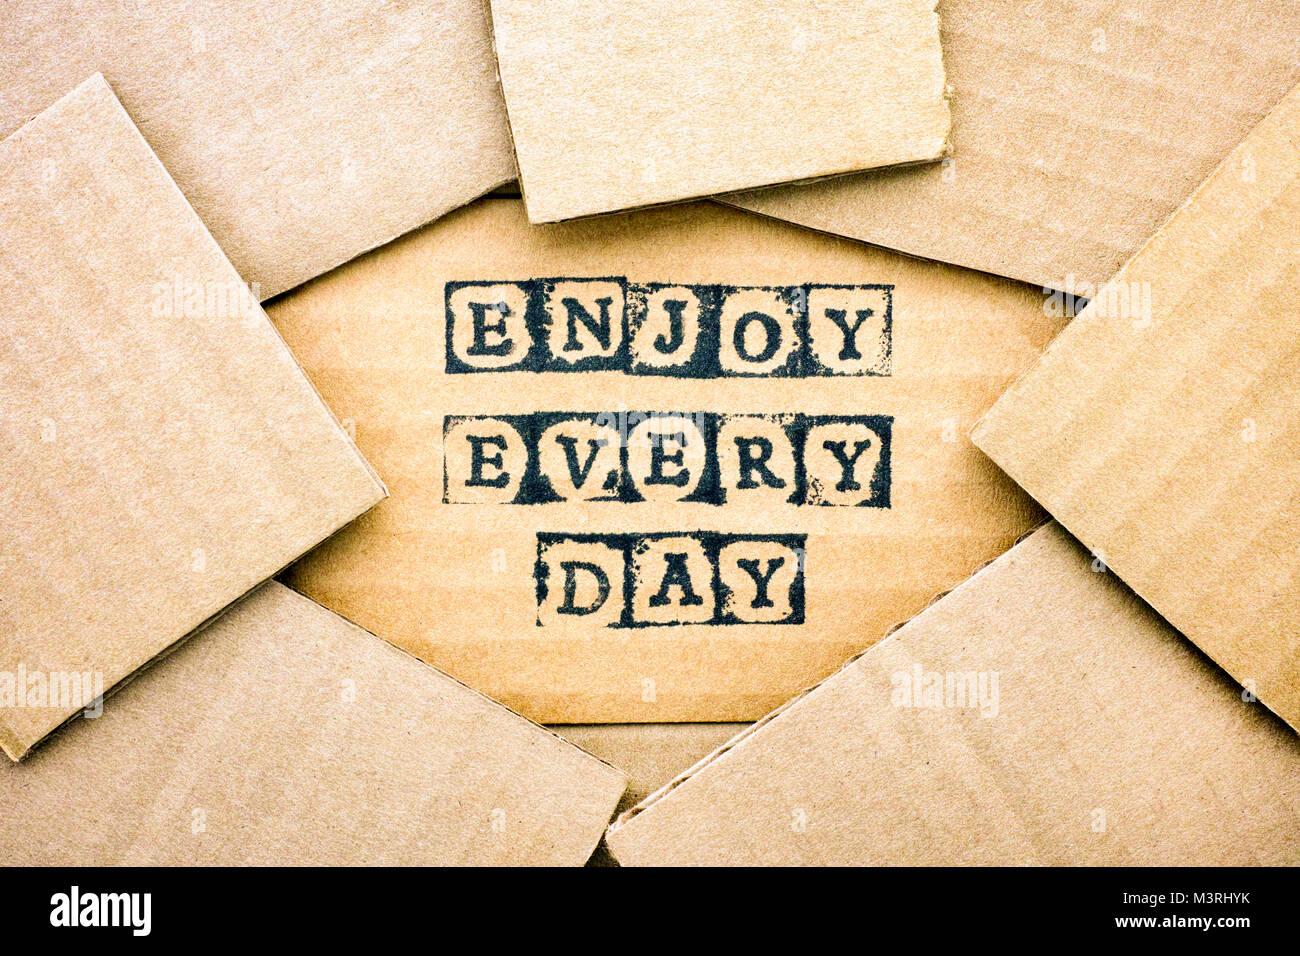 Words Enjoy Every Day make by black alphabet stamps on cardboard with some piece of cardboard. - Stock Image